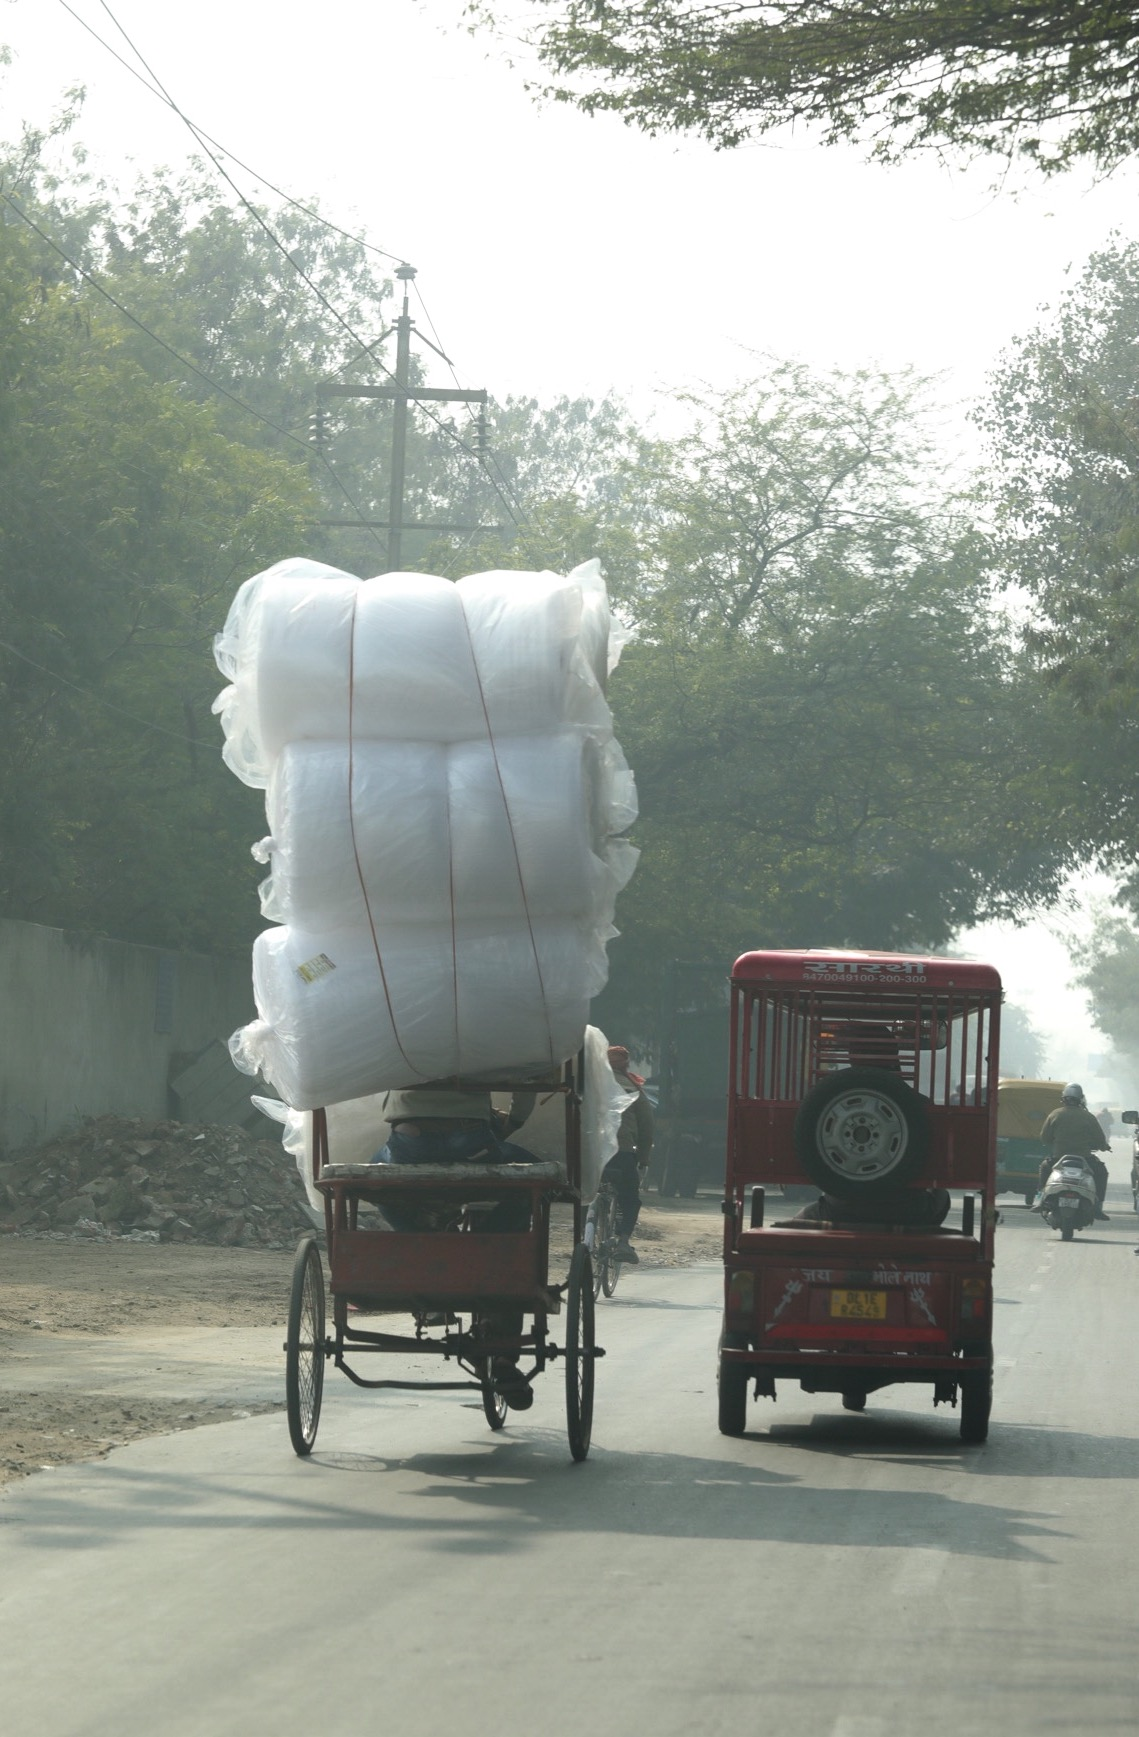 Luckily for the driver in the rickshaw on the left, this was bubble wrap!